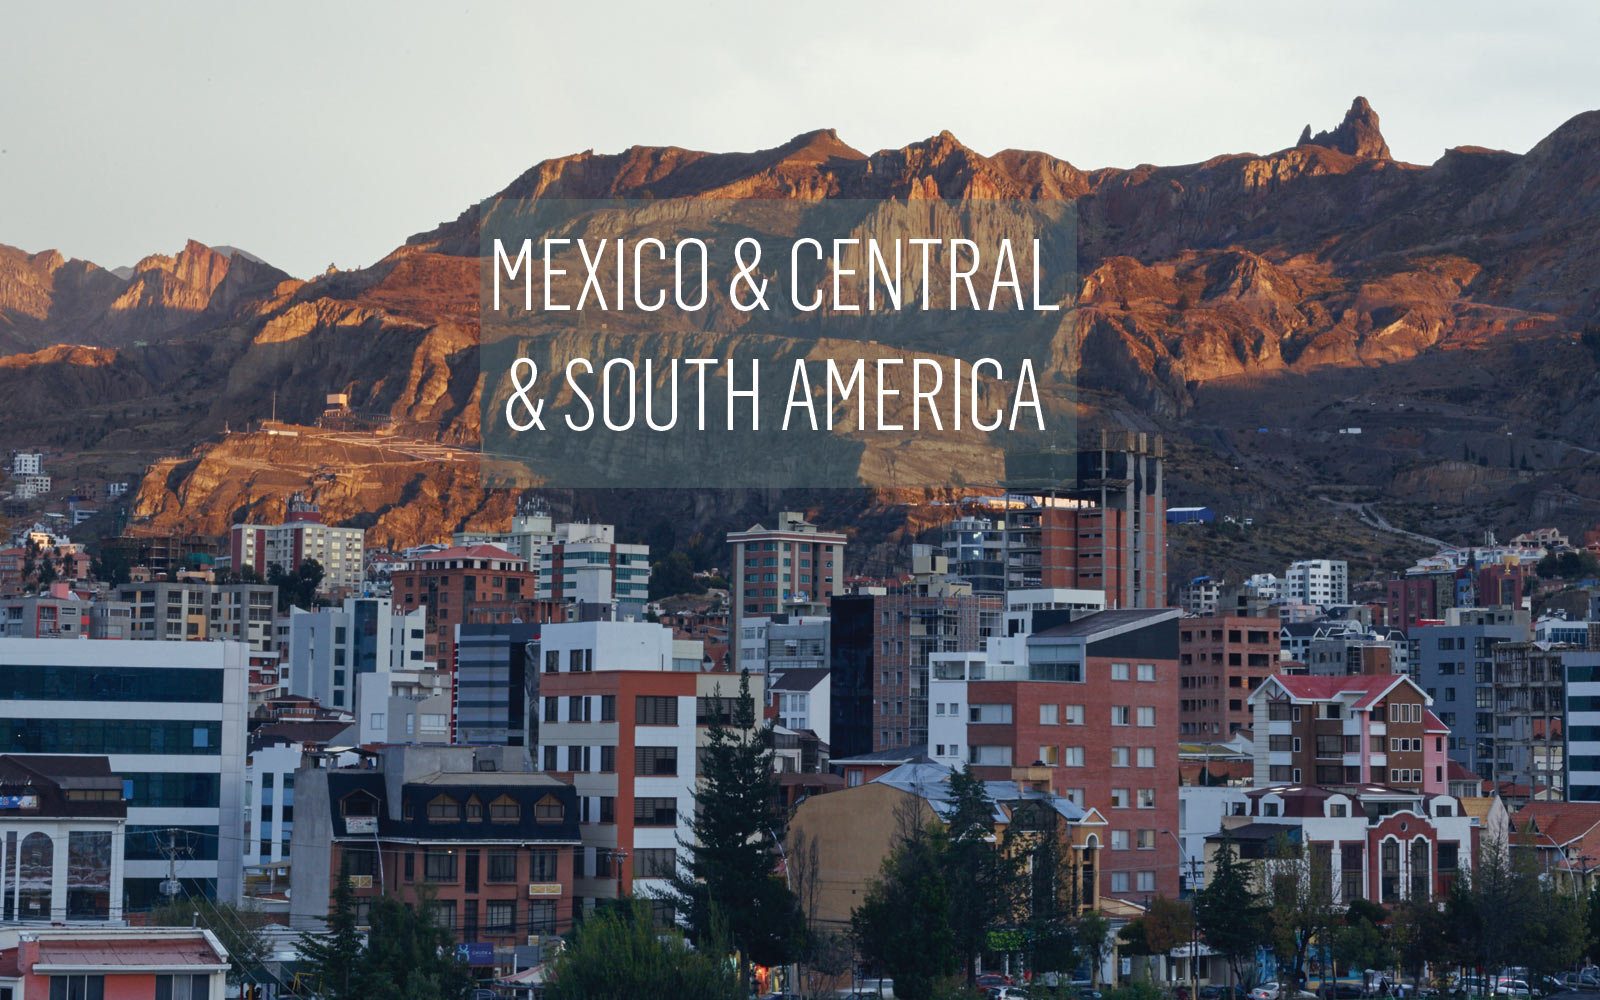 Mexico and Central and South America, La Paz, Bolivia